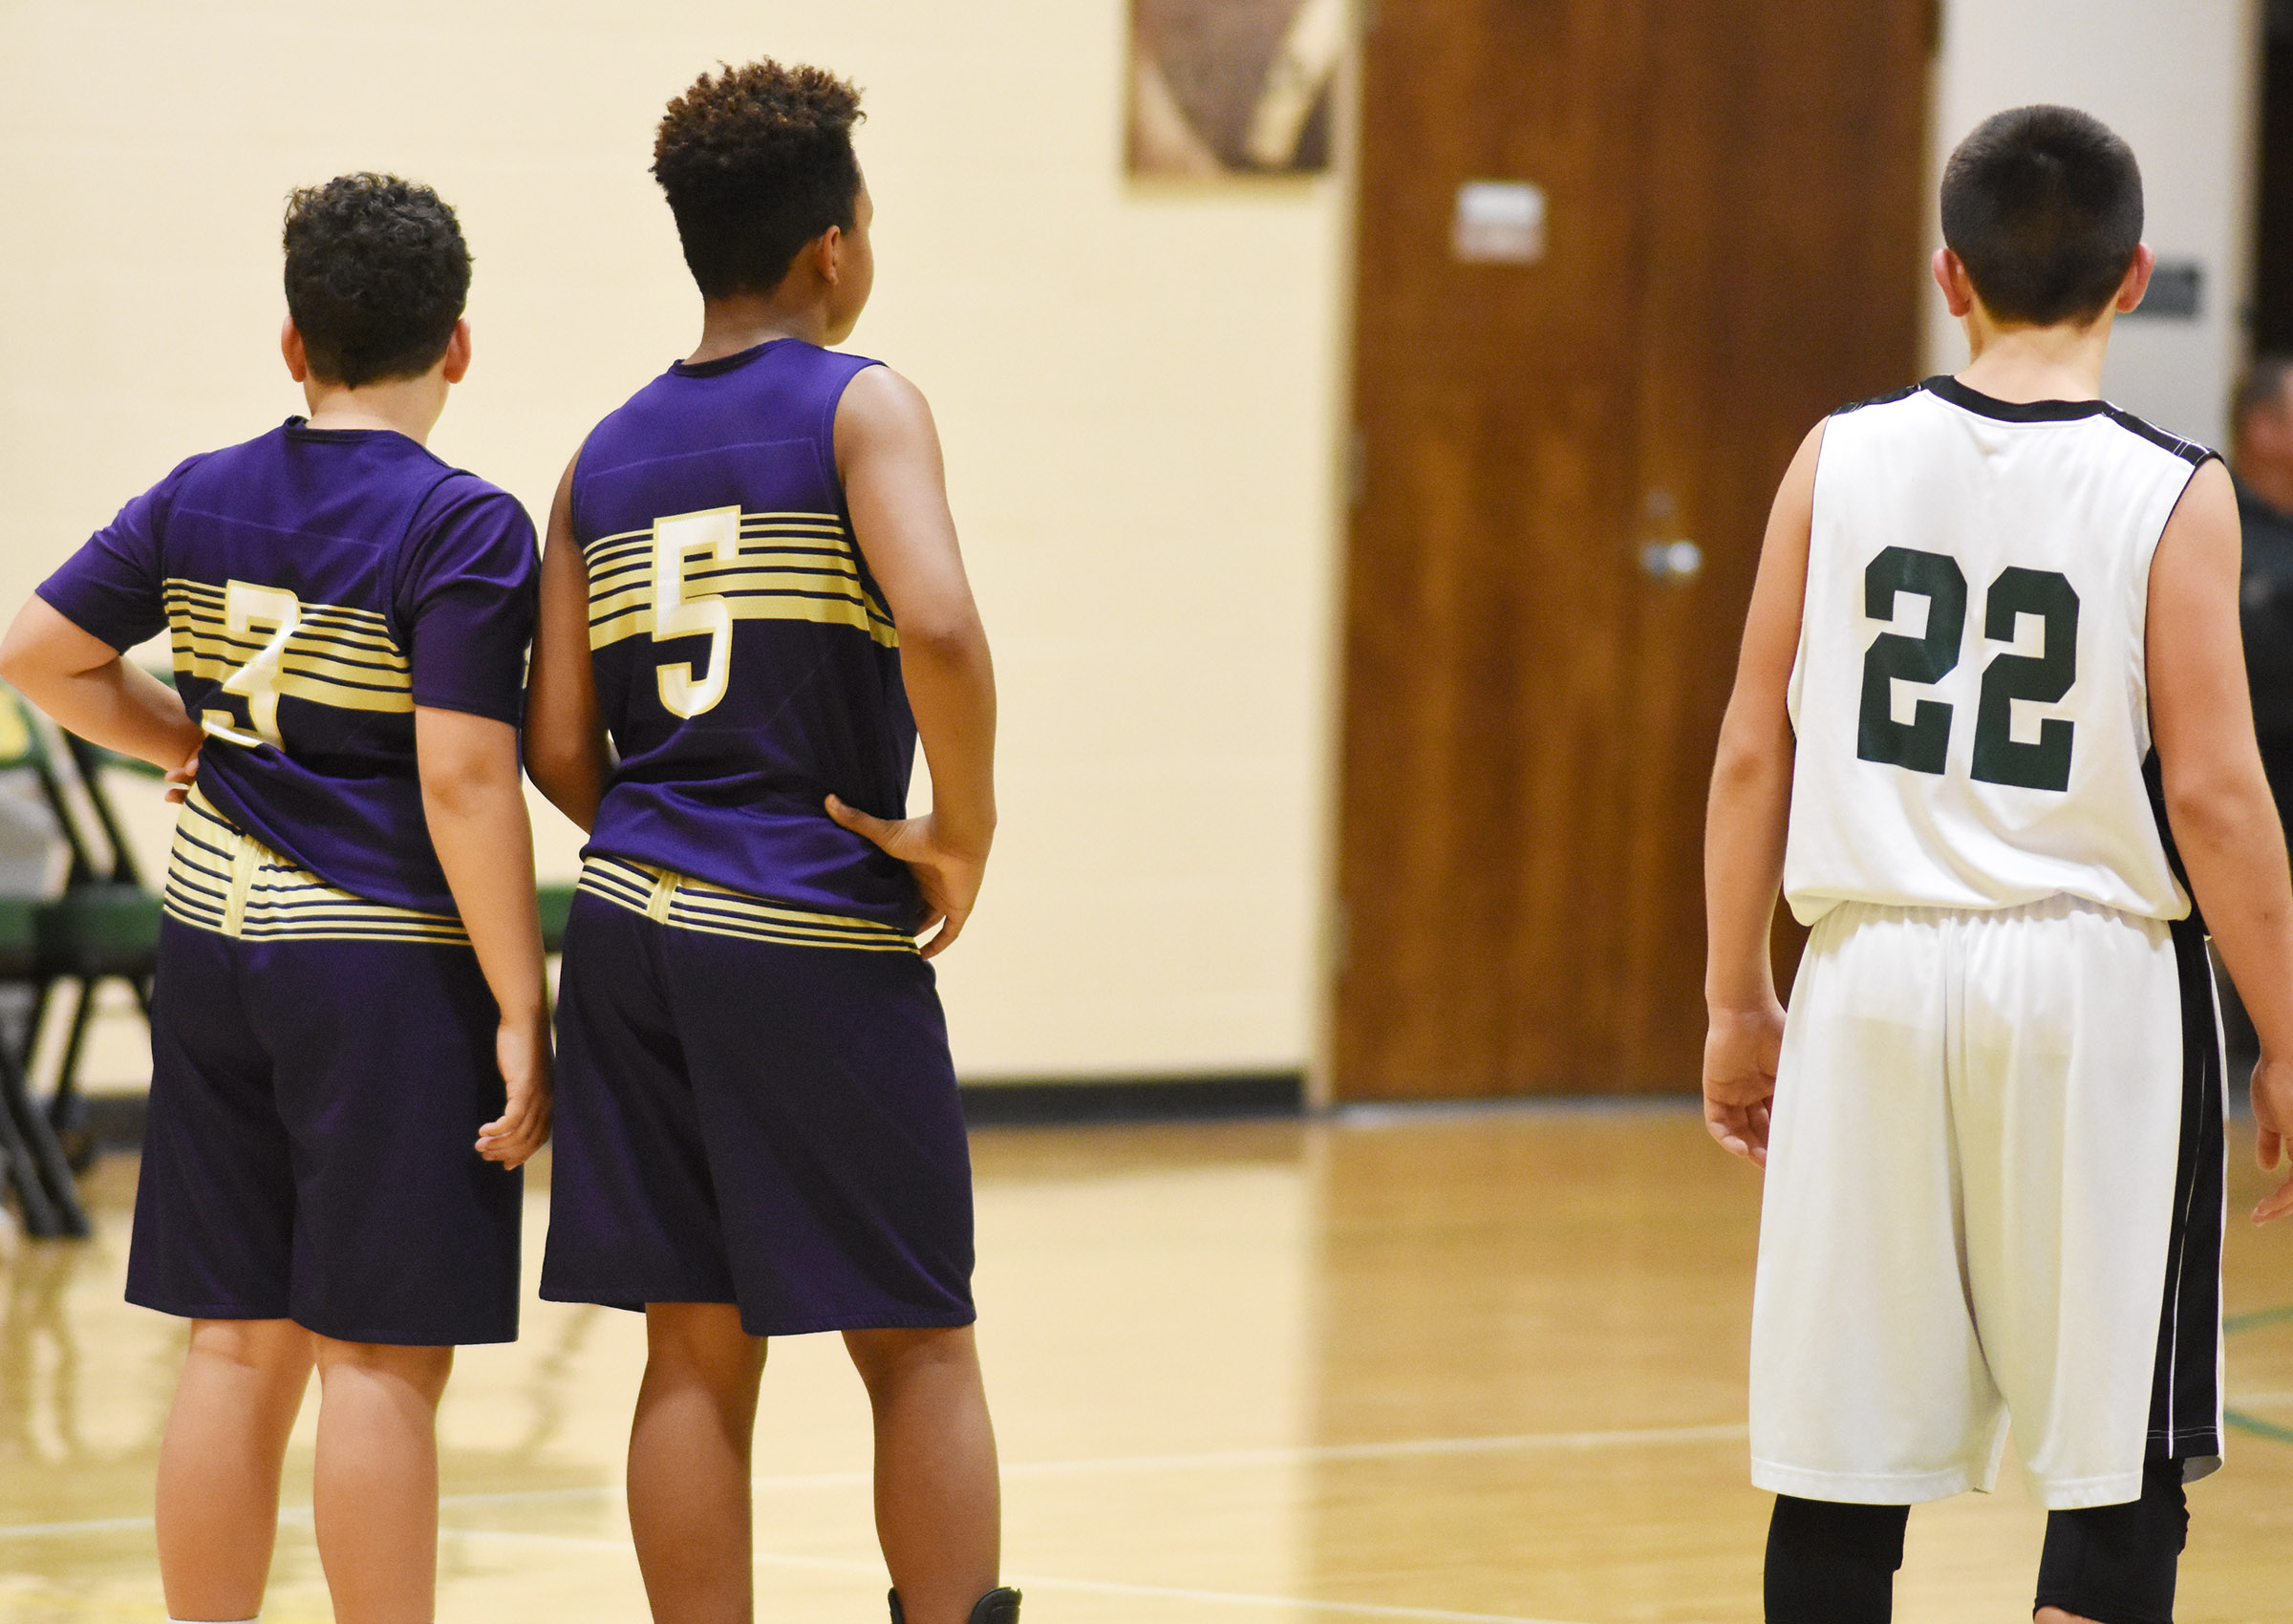 CMS seventh-graders Kaydon Taylor, at left, and Deondre Weathers watch a foul shot.